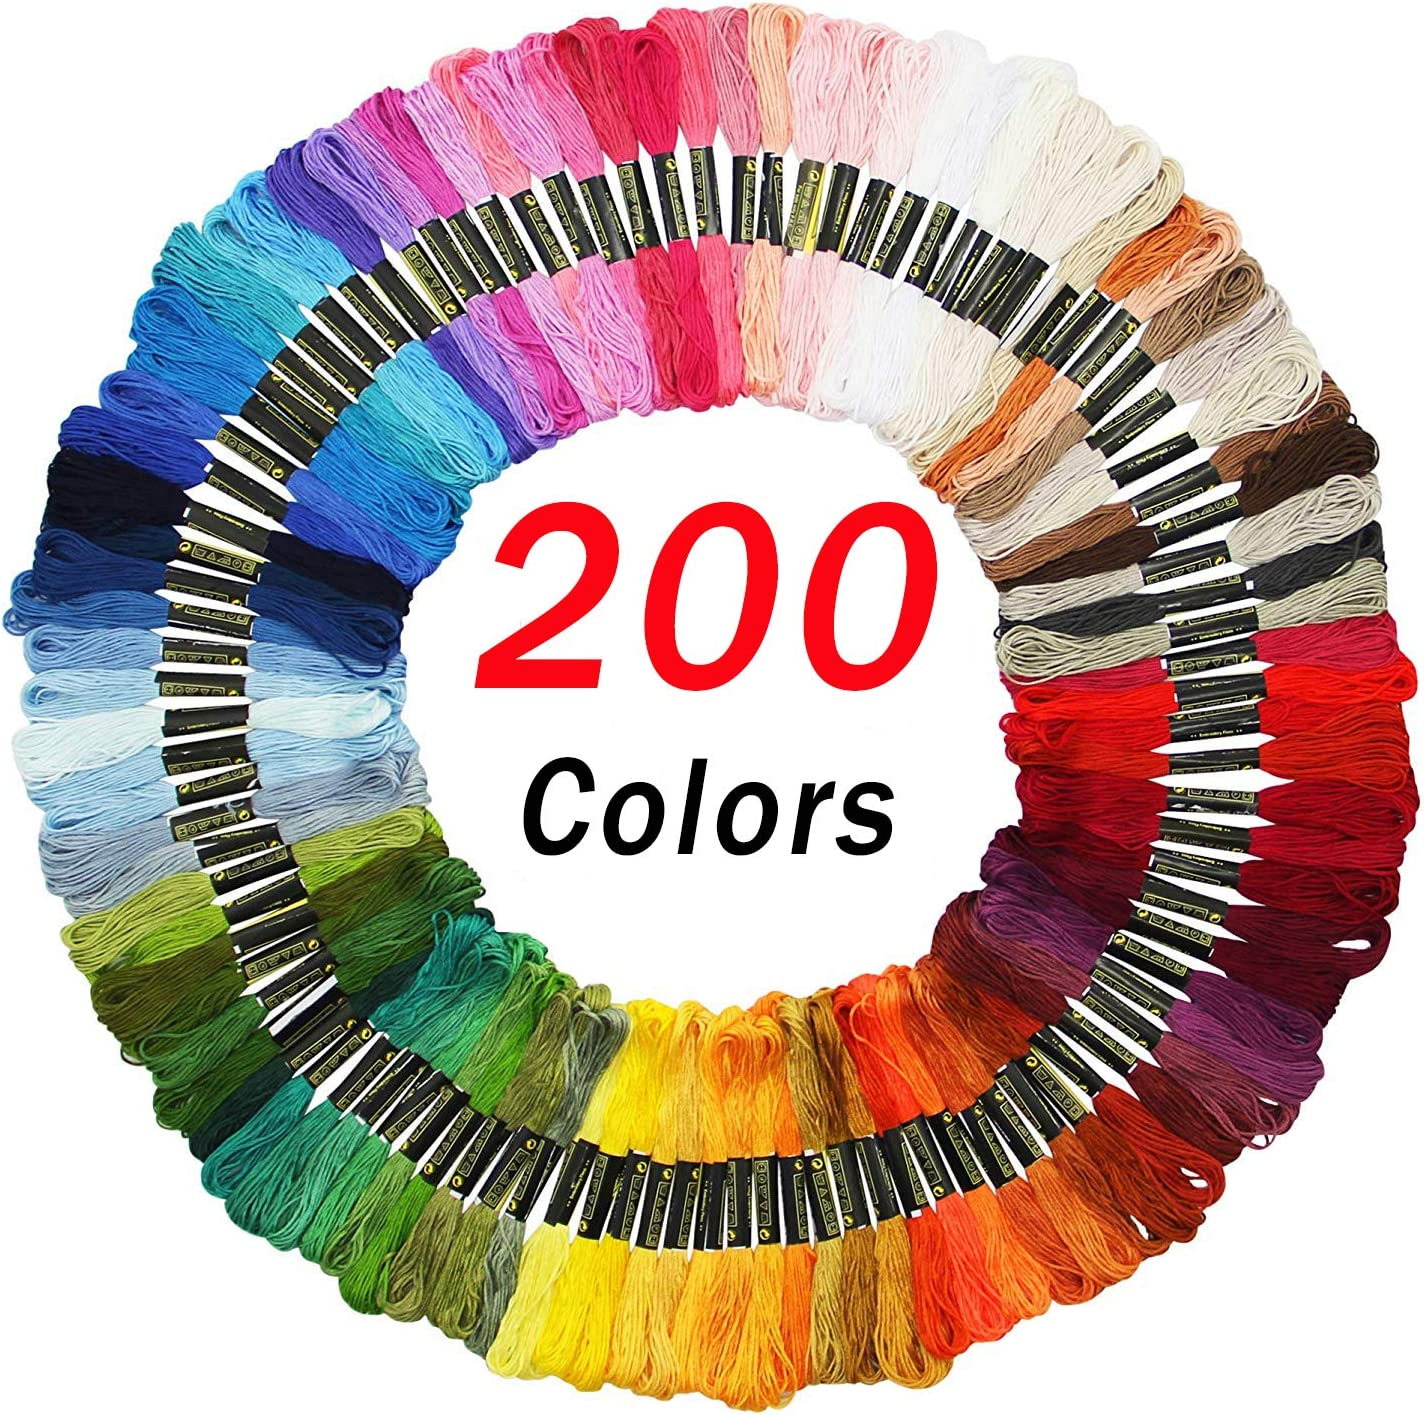 Premium Embroidery Floss Friendship Bracelet String 100 Skeins Rainbow Color Embroidery Threads Cross Stitch Threads Handmade Craft Floss with 6 Strands 8.75 Yard